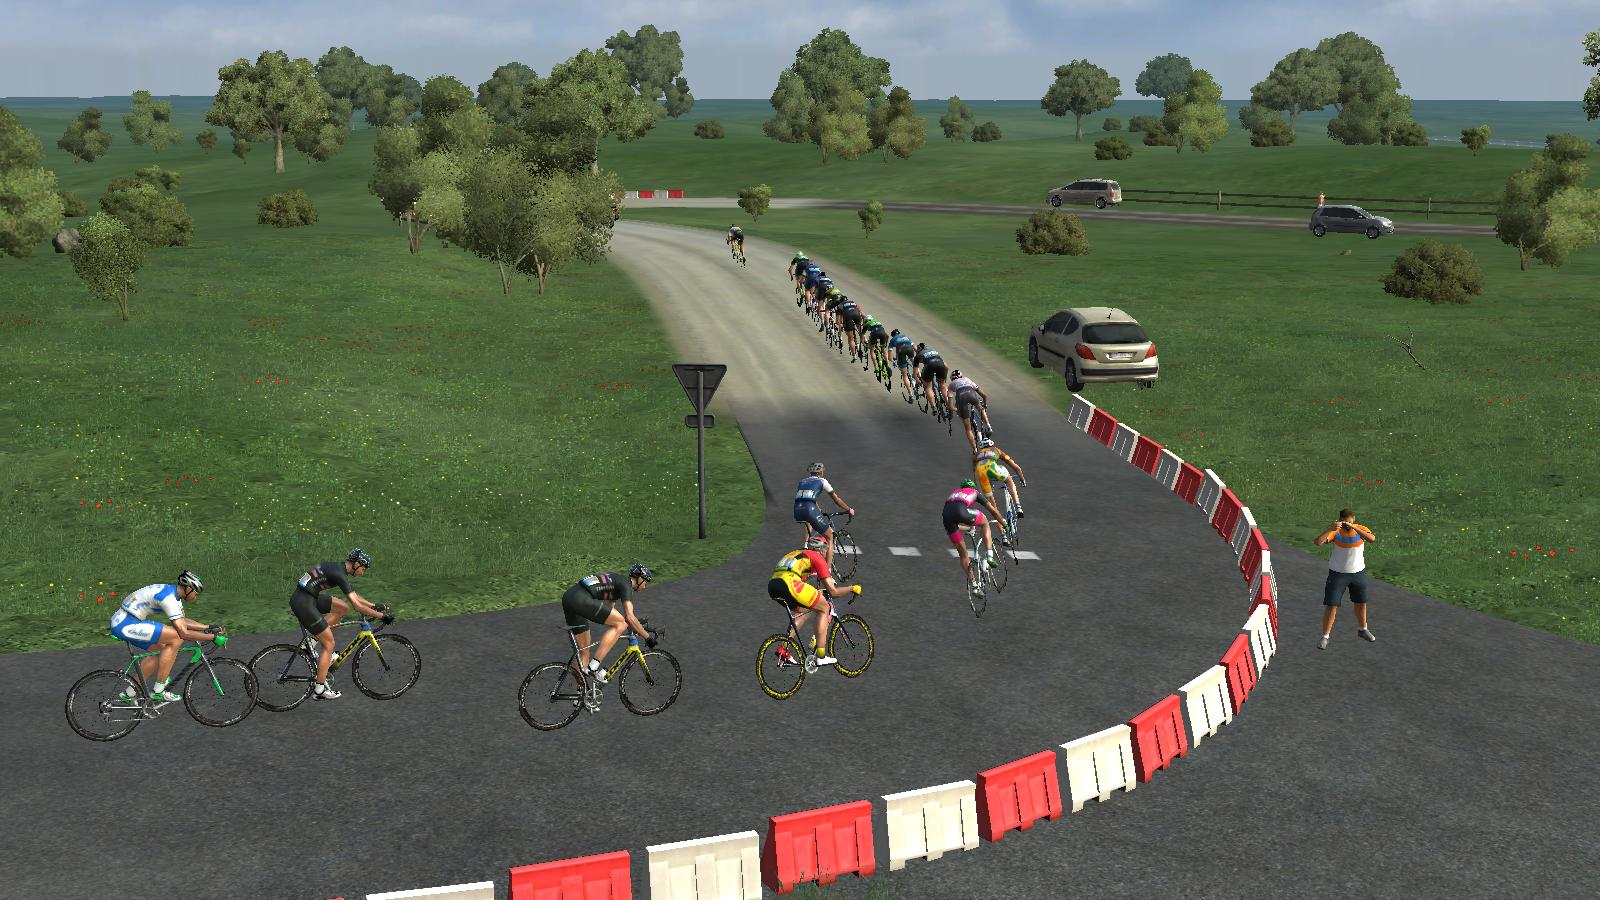 pcmdaily.com/images/mg/2019/Races/PTHC/Rheden/38.jpg